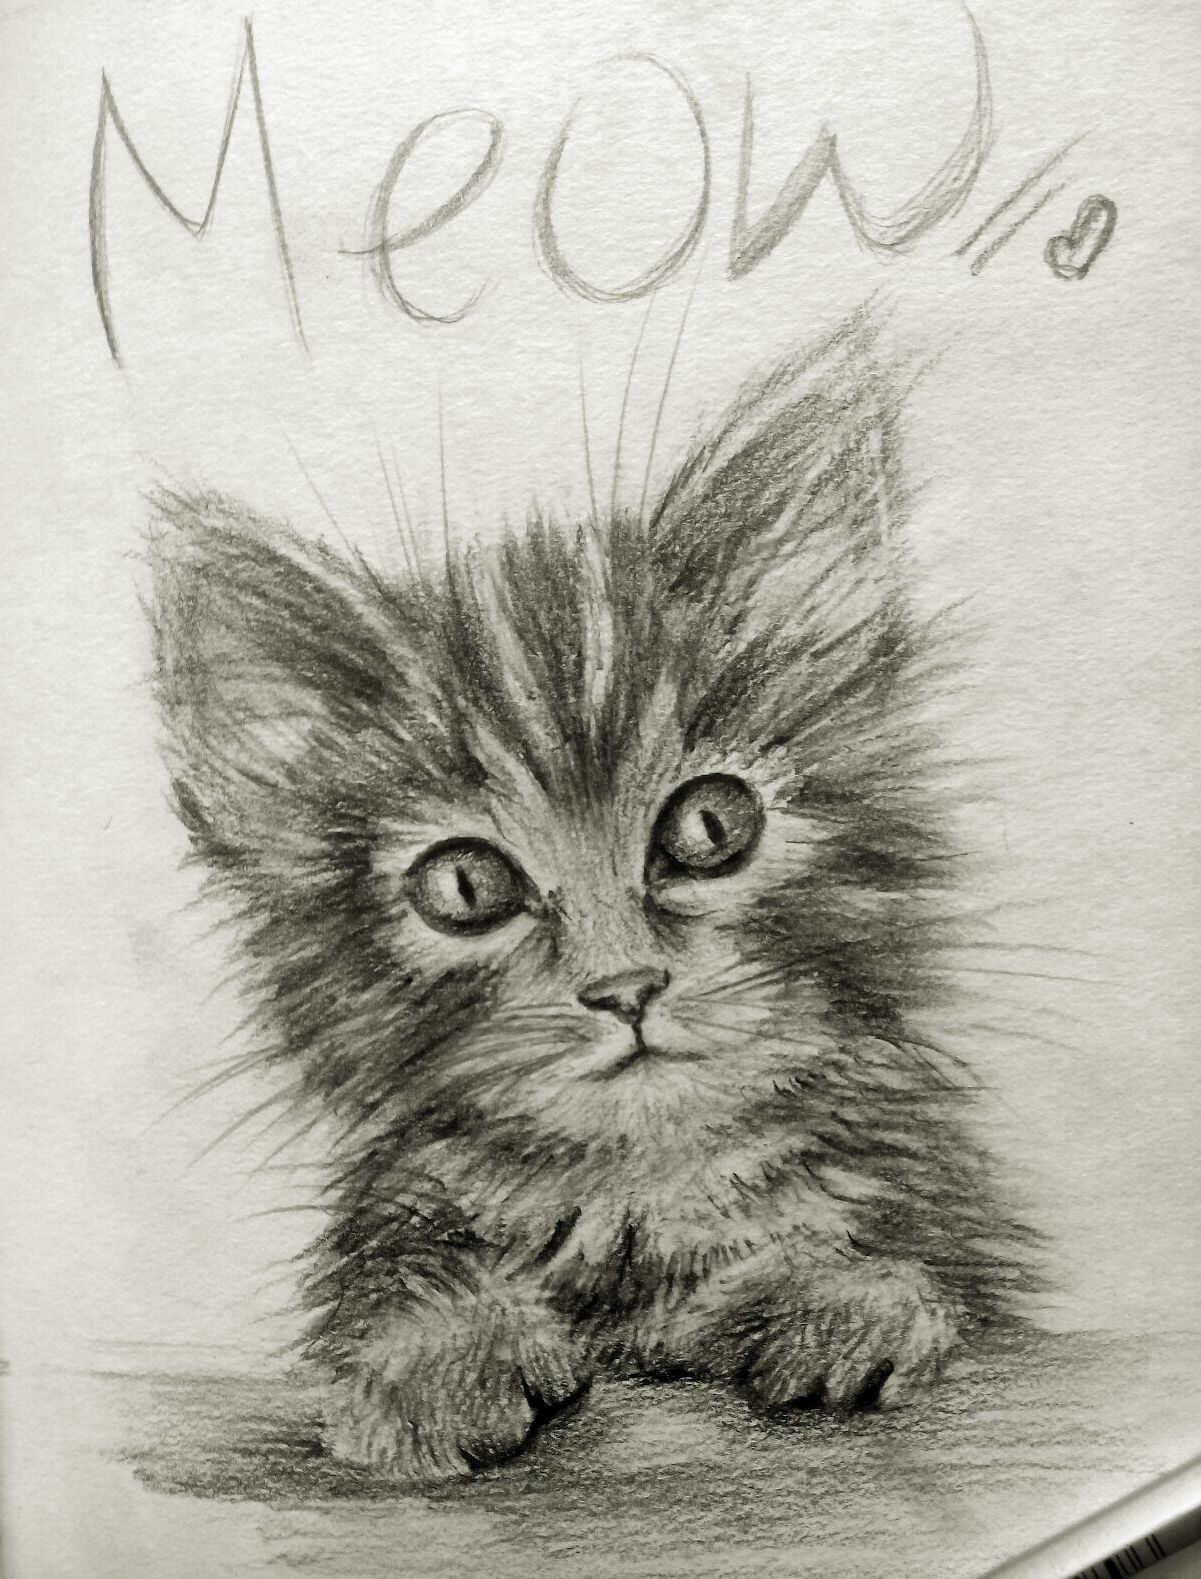 Kitten Drawing Pencil Cute Skethcbook Sketches Art Pencil Drawing Of A Kitten Kitten Art Pencil Drawings Kitten Drawing